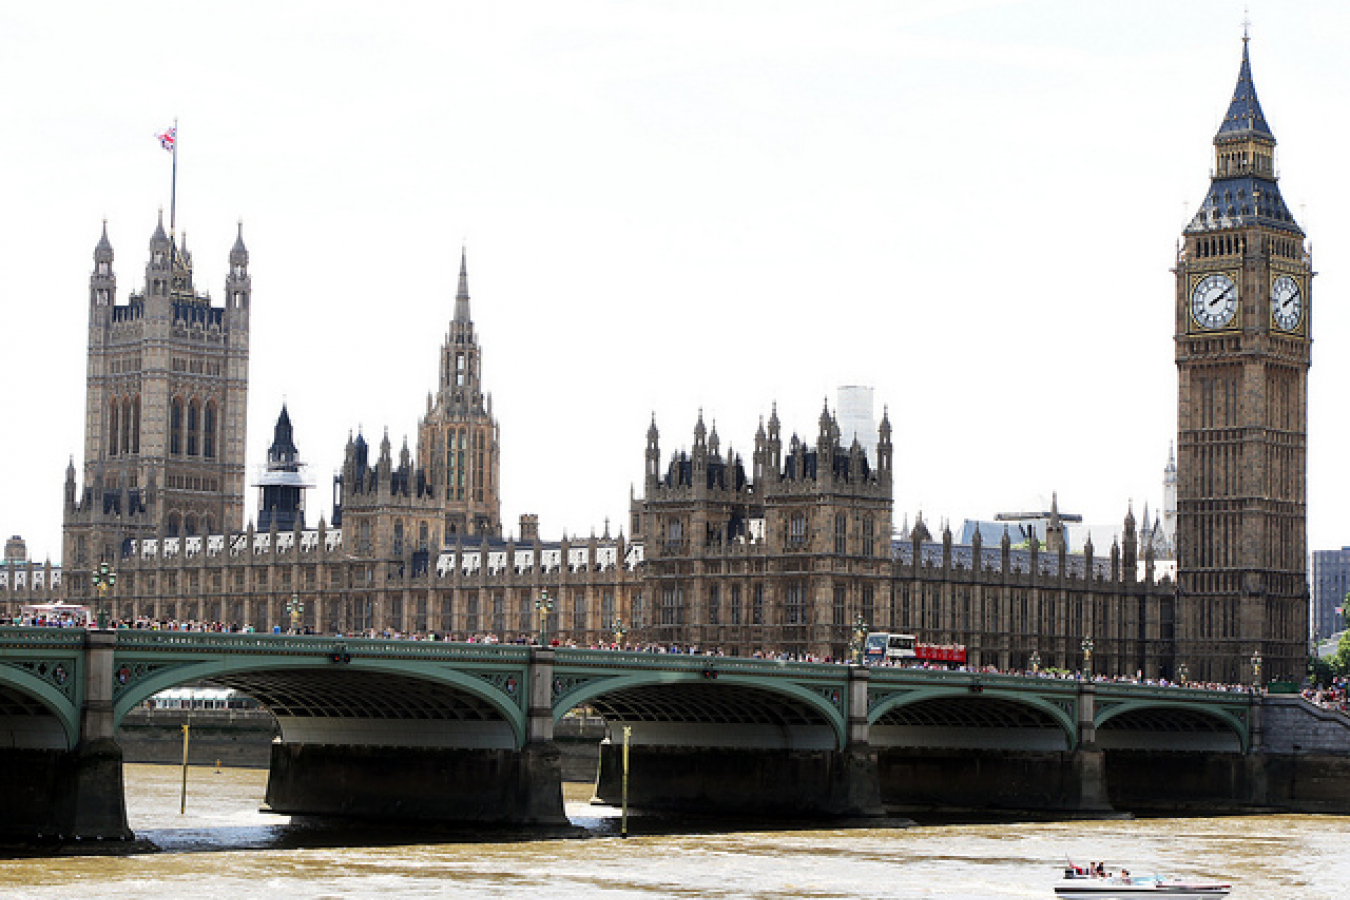 Houses of Parliament - Palace of Westminster